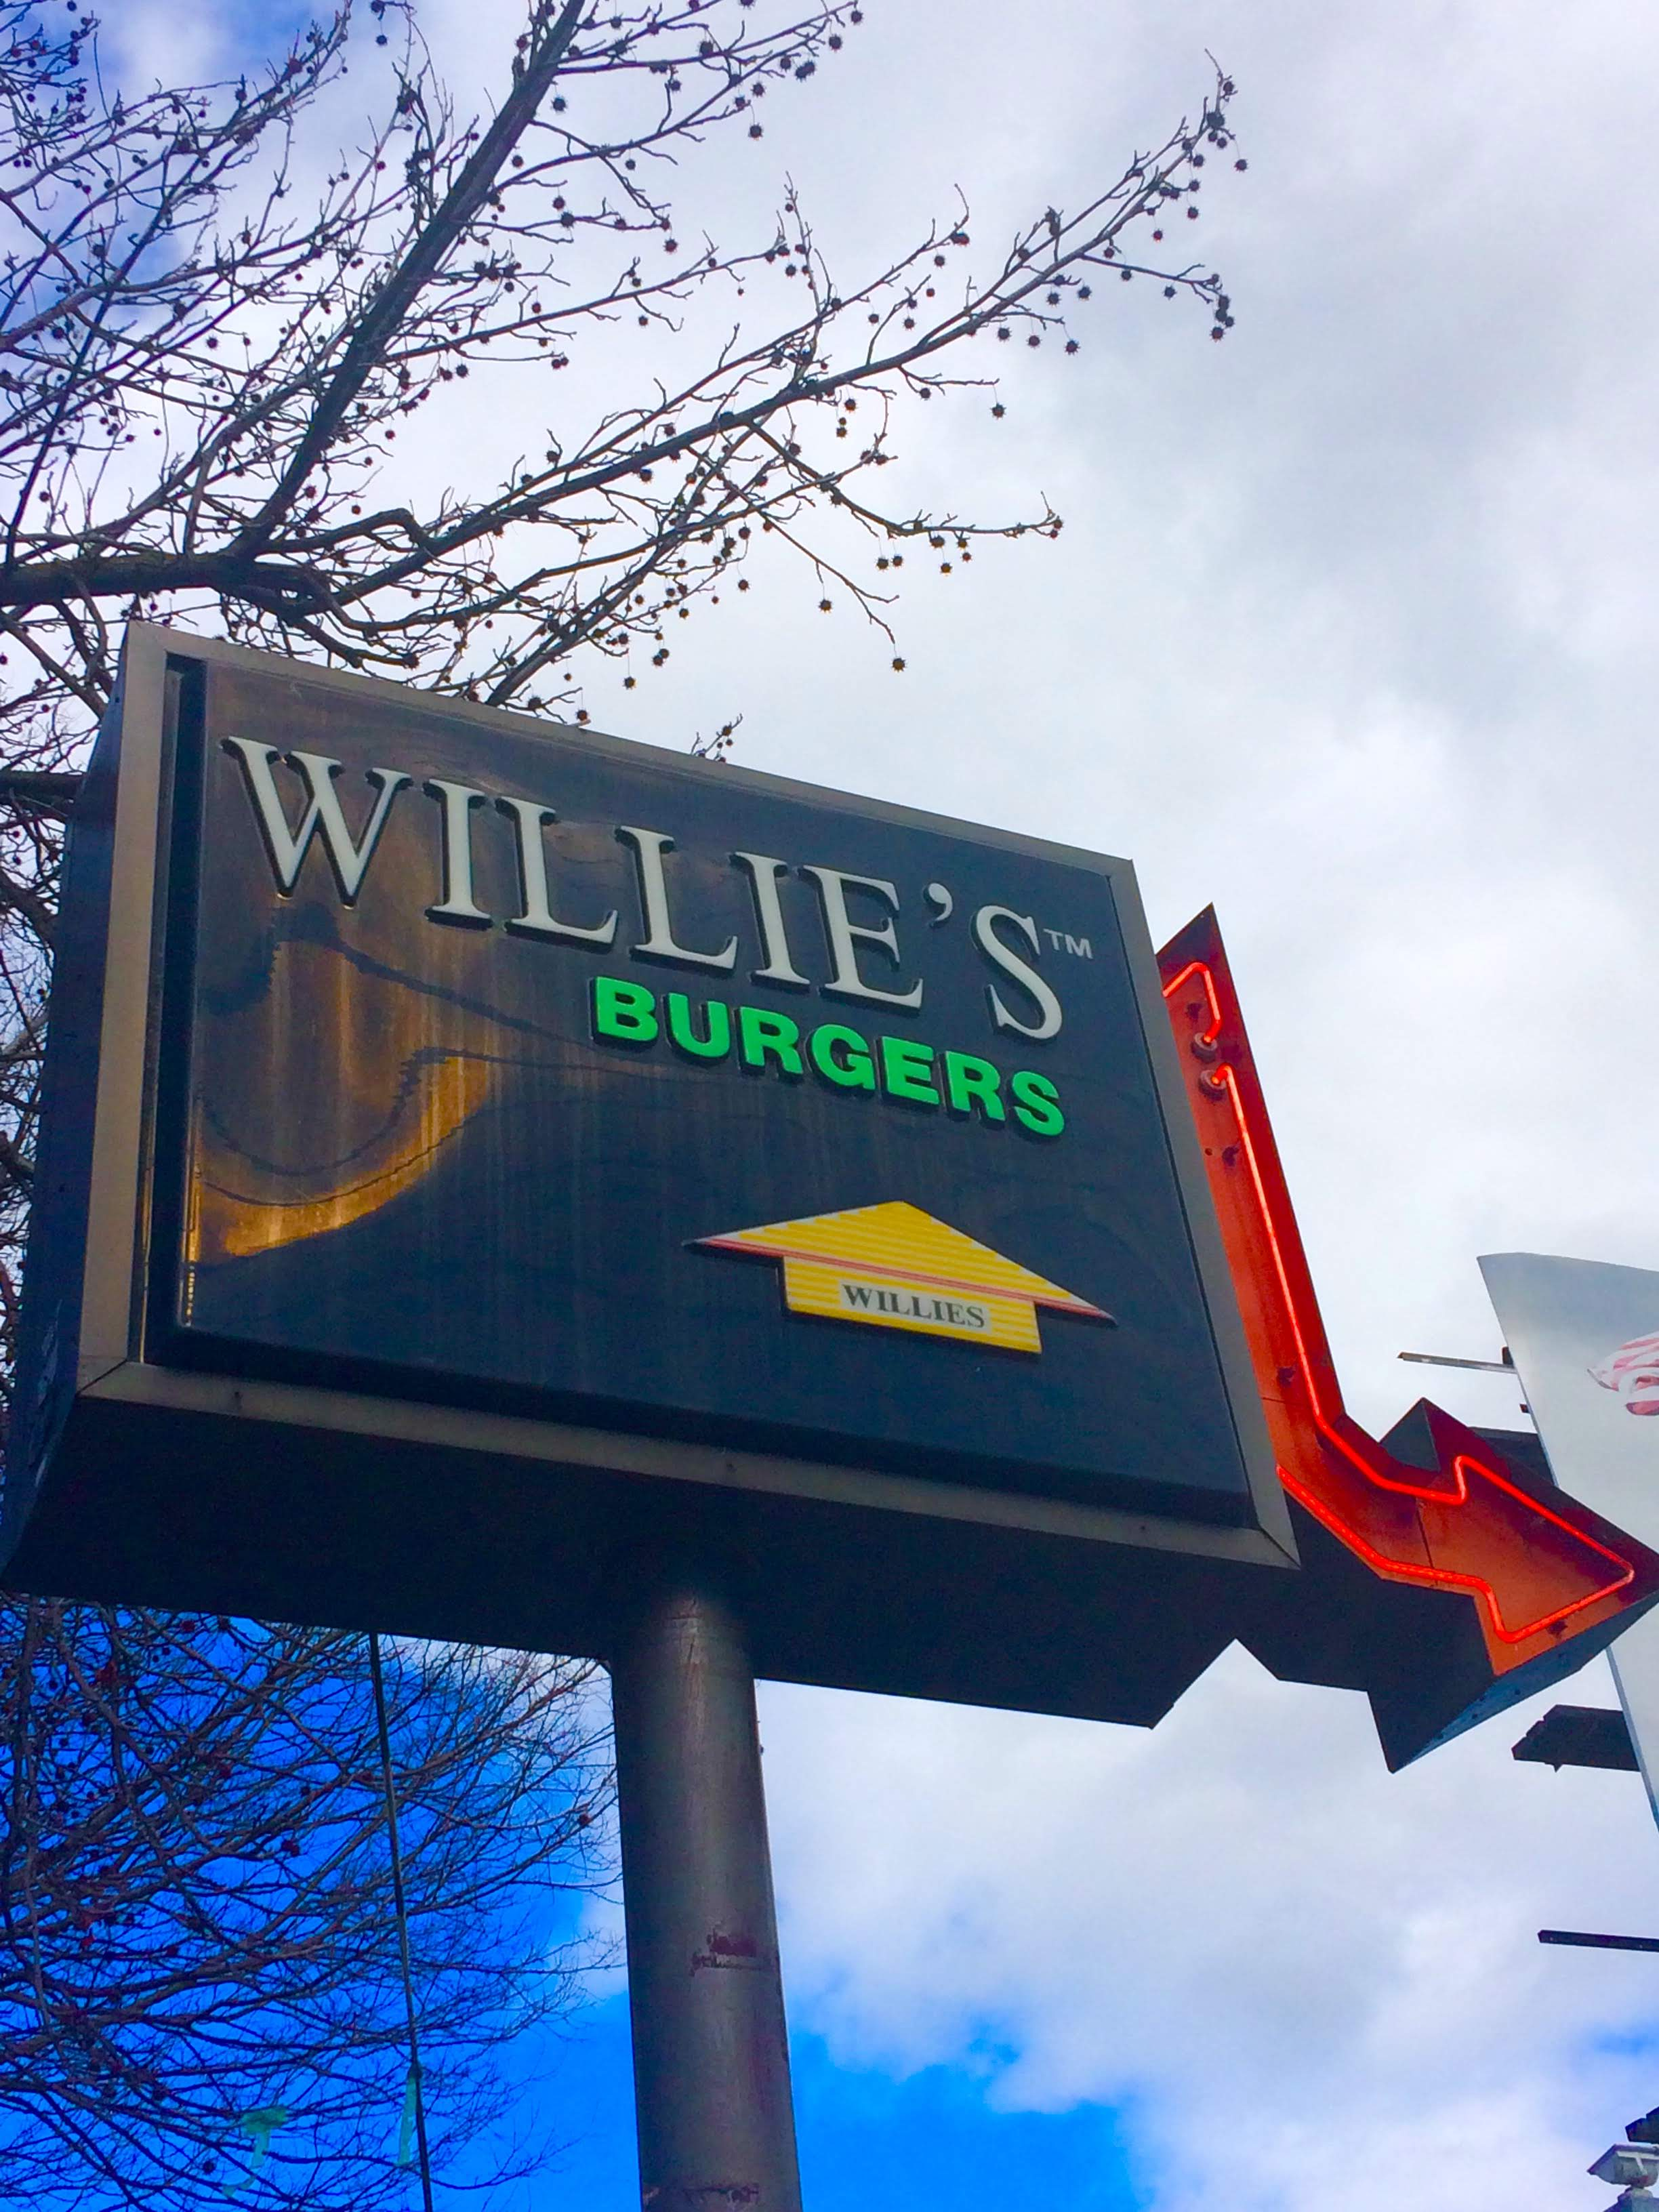 tiny travel chick indoor things to do in sacramento willie's burgers